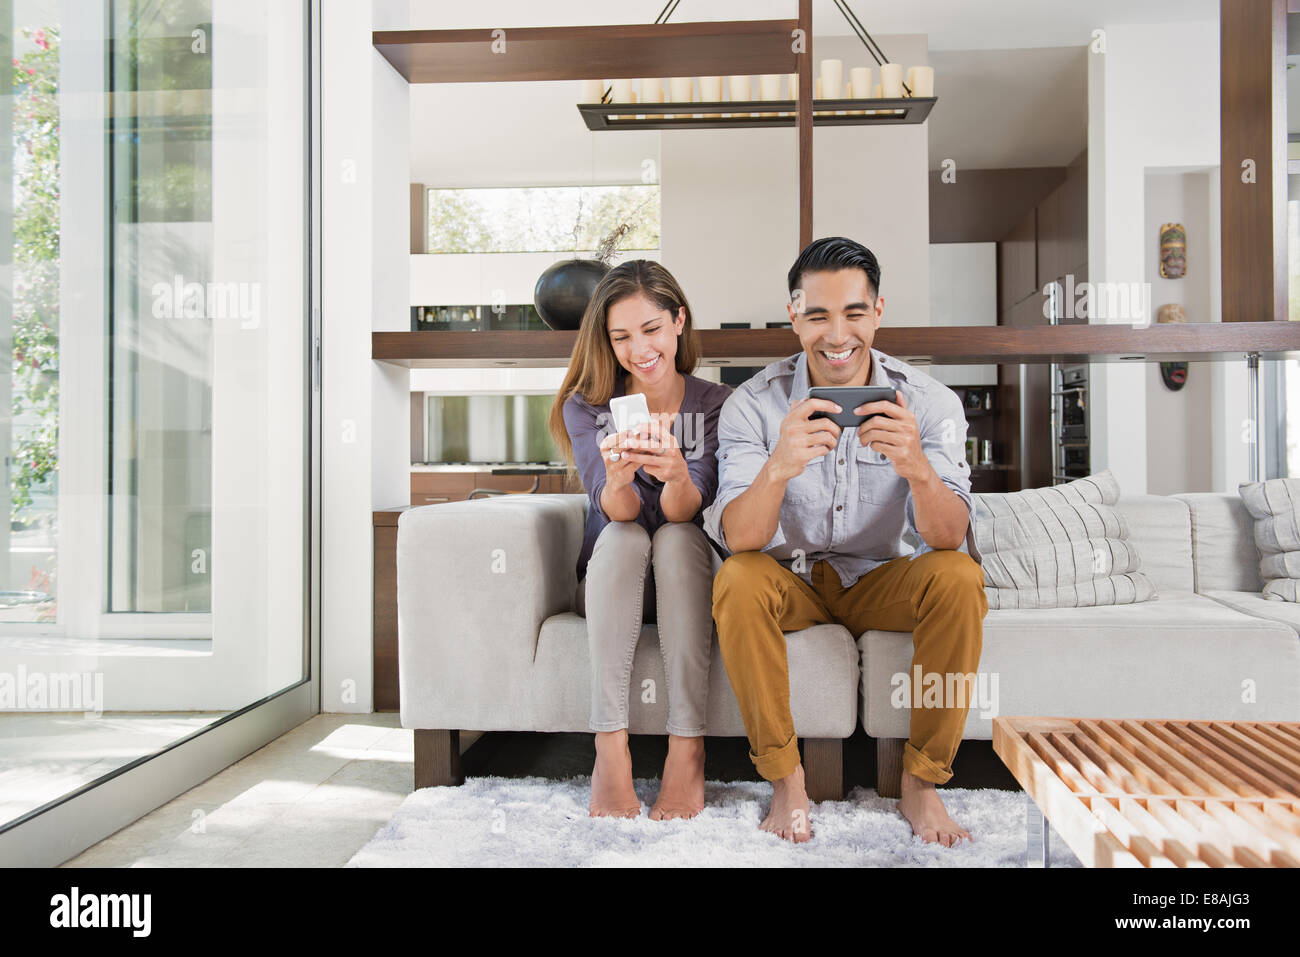 Couple playing games on smartphones on sitting room sofa - Stock Image